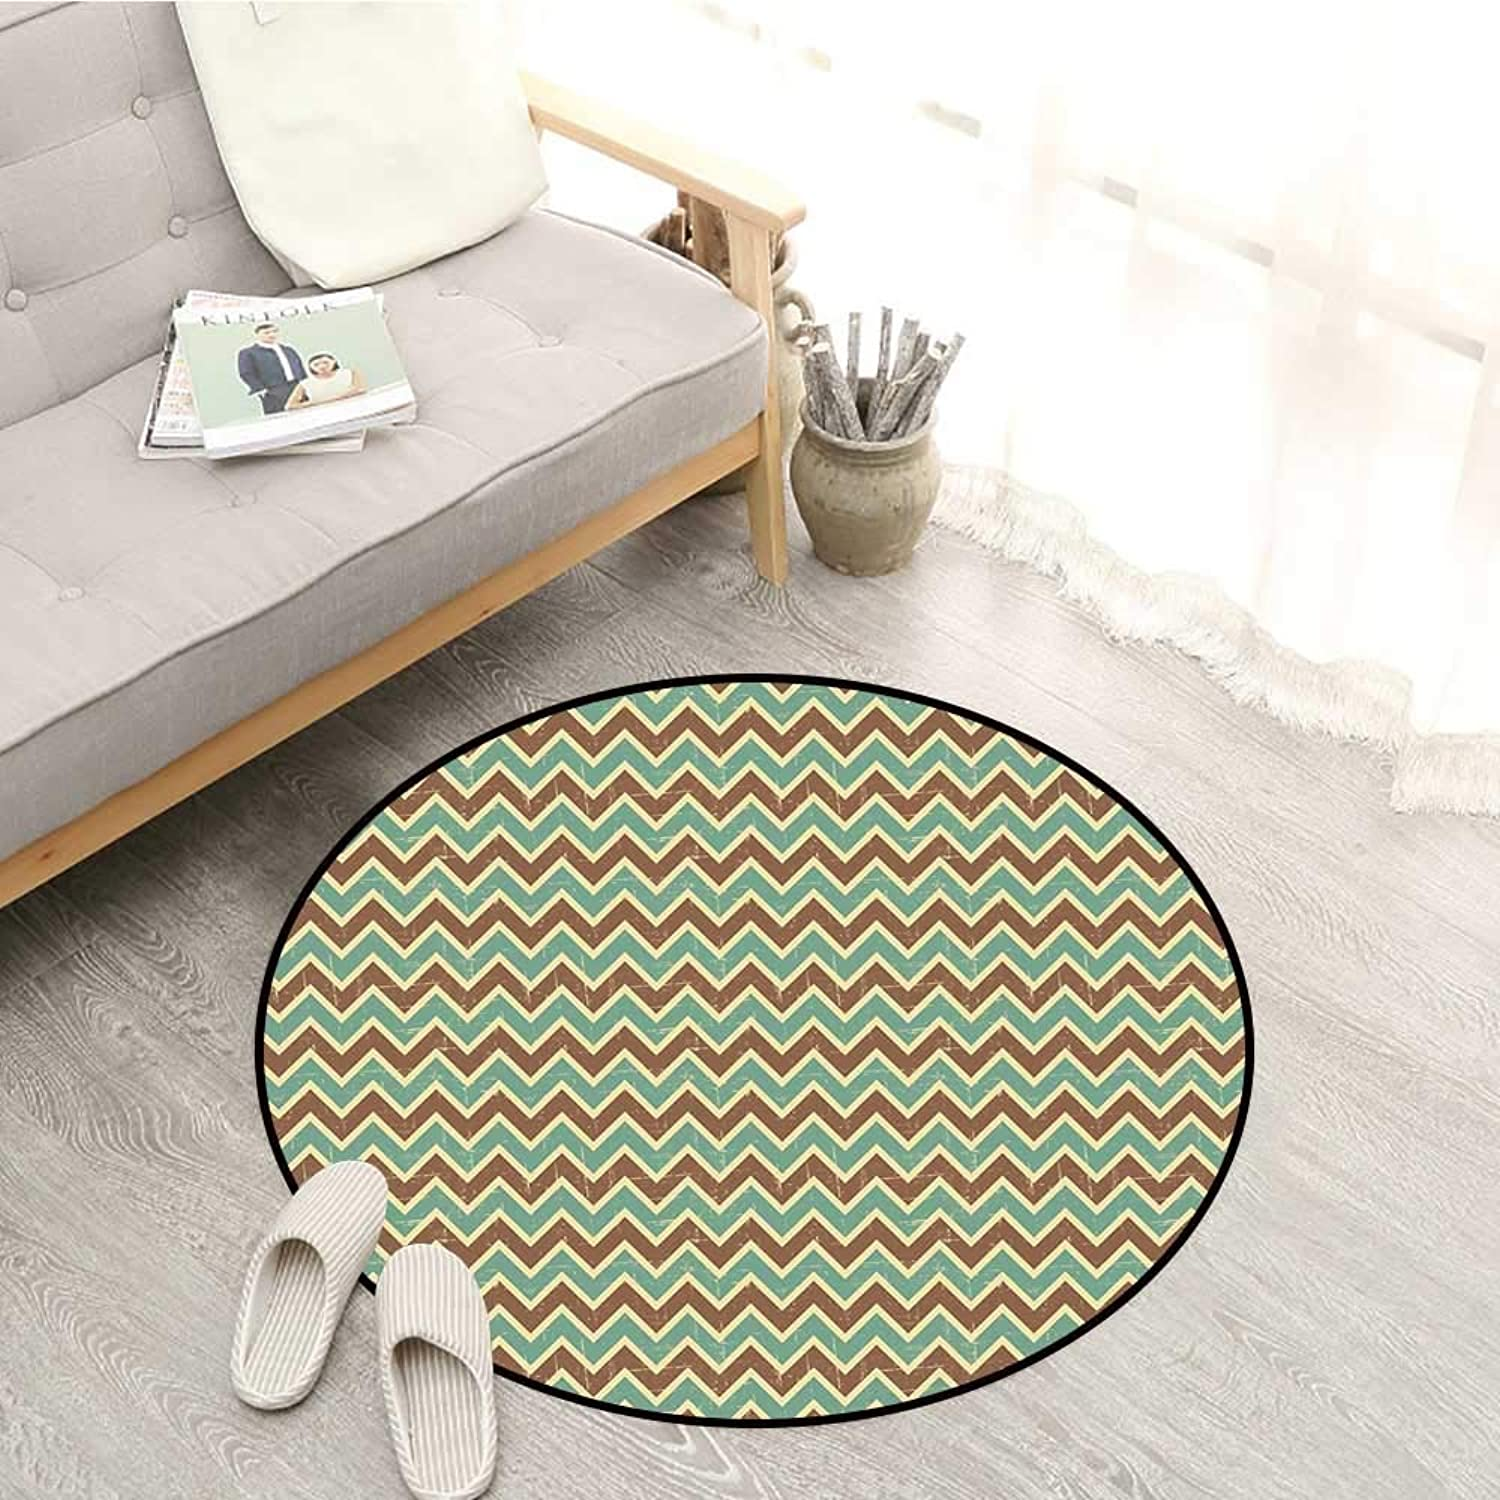 Brown and bluee Living Room Round Rugs Chevron Zigzags Herringbone Pattern with Vintage Worn Look Design Sofa Coffee Table Mat 4'3  Seafoam Yellow Brown